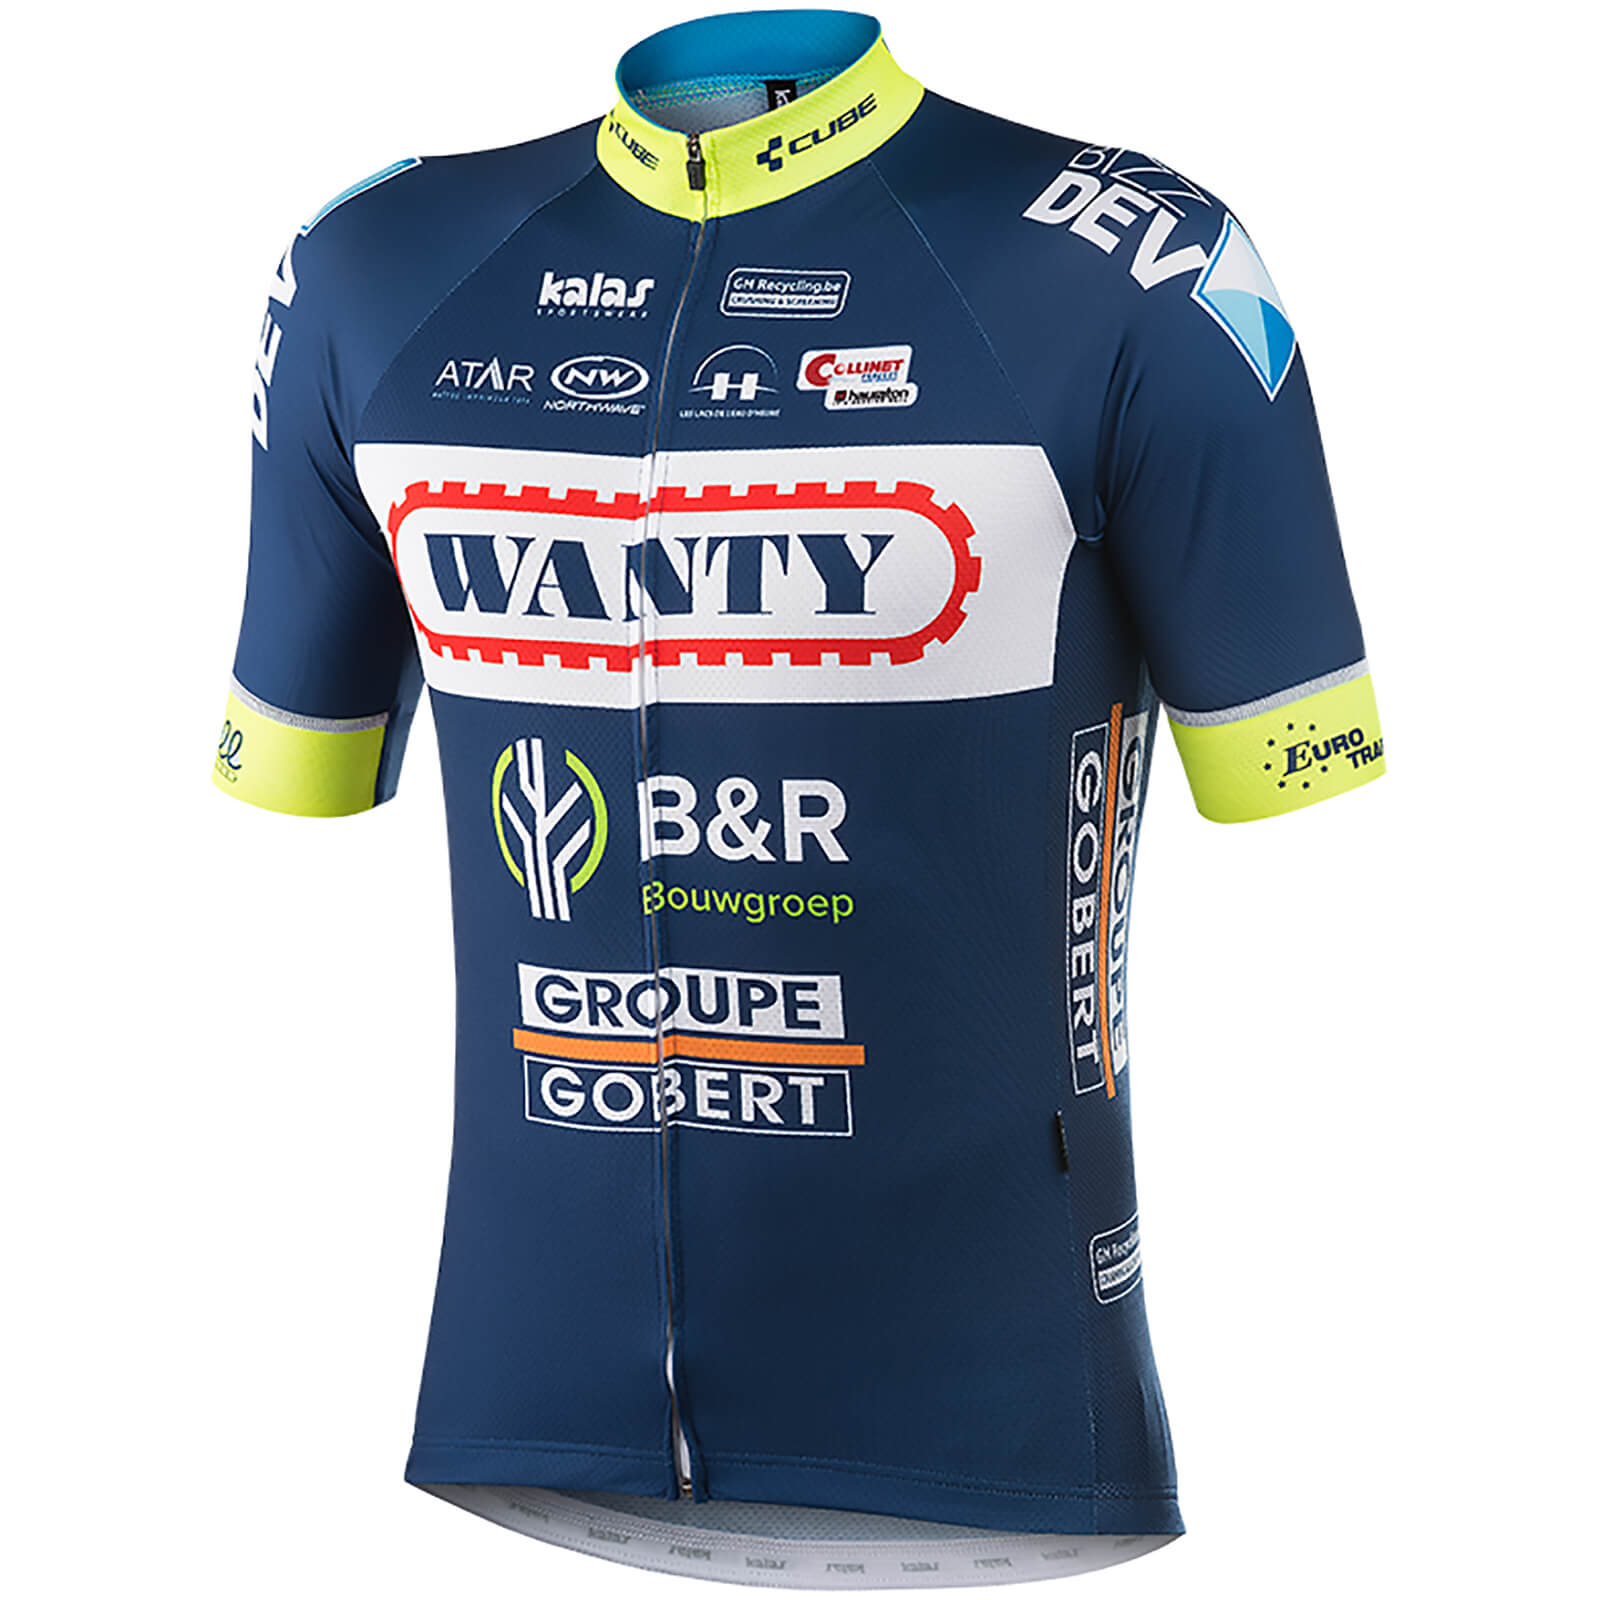 Kalas Wanty Groupe Gobert Replica Team Short Sleeve Jersey ... 1515167ad